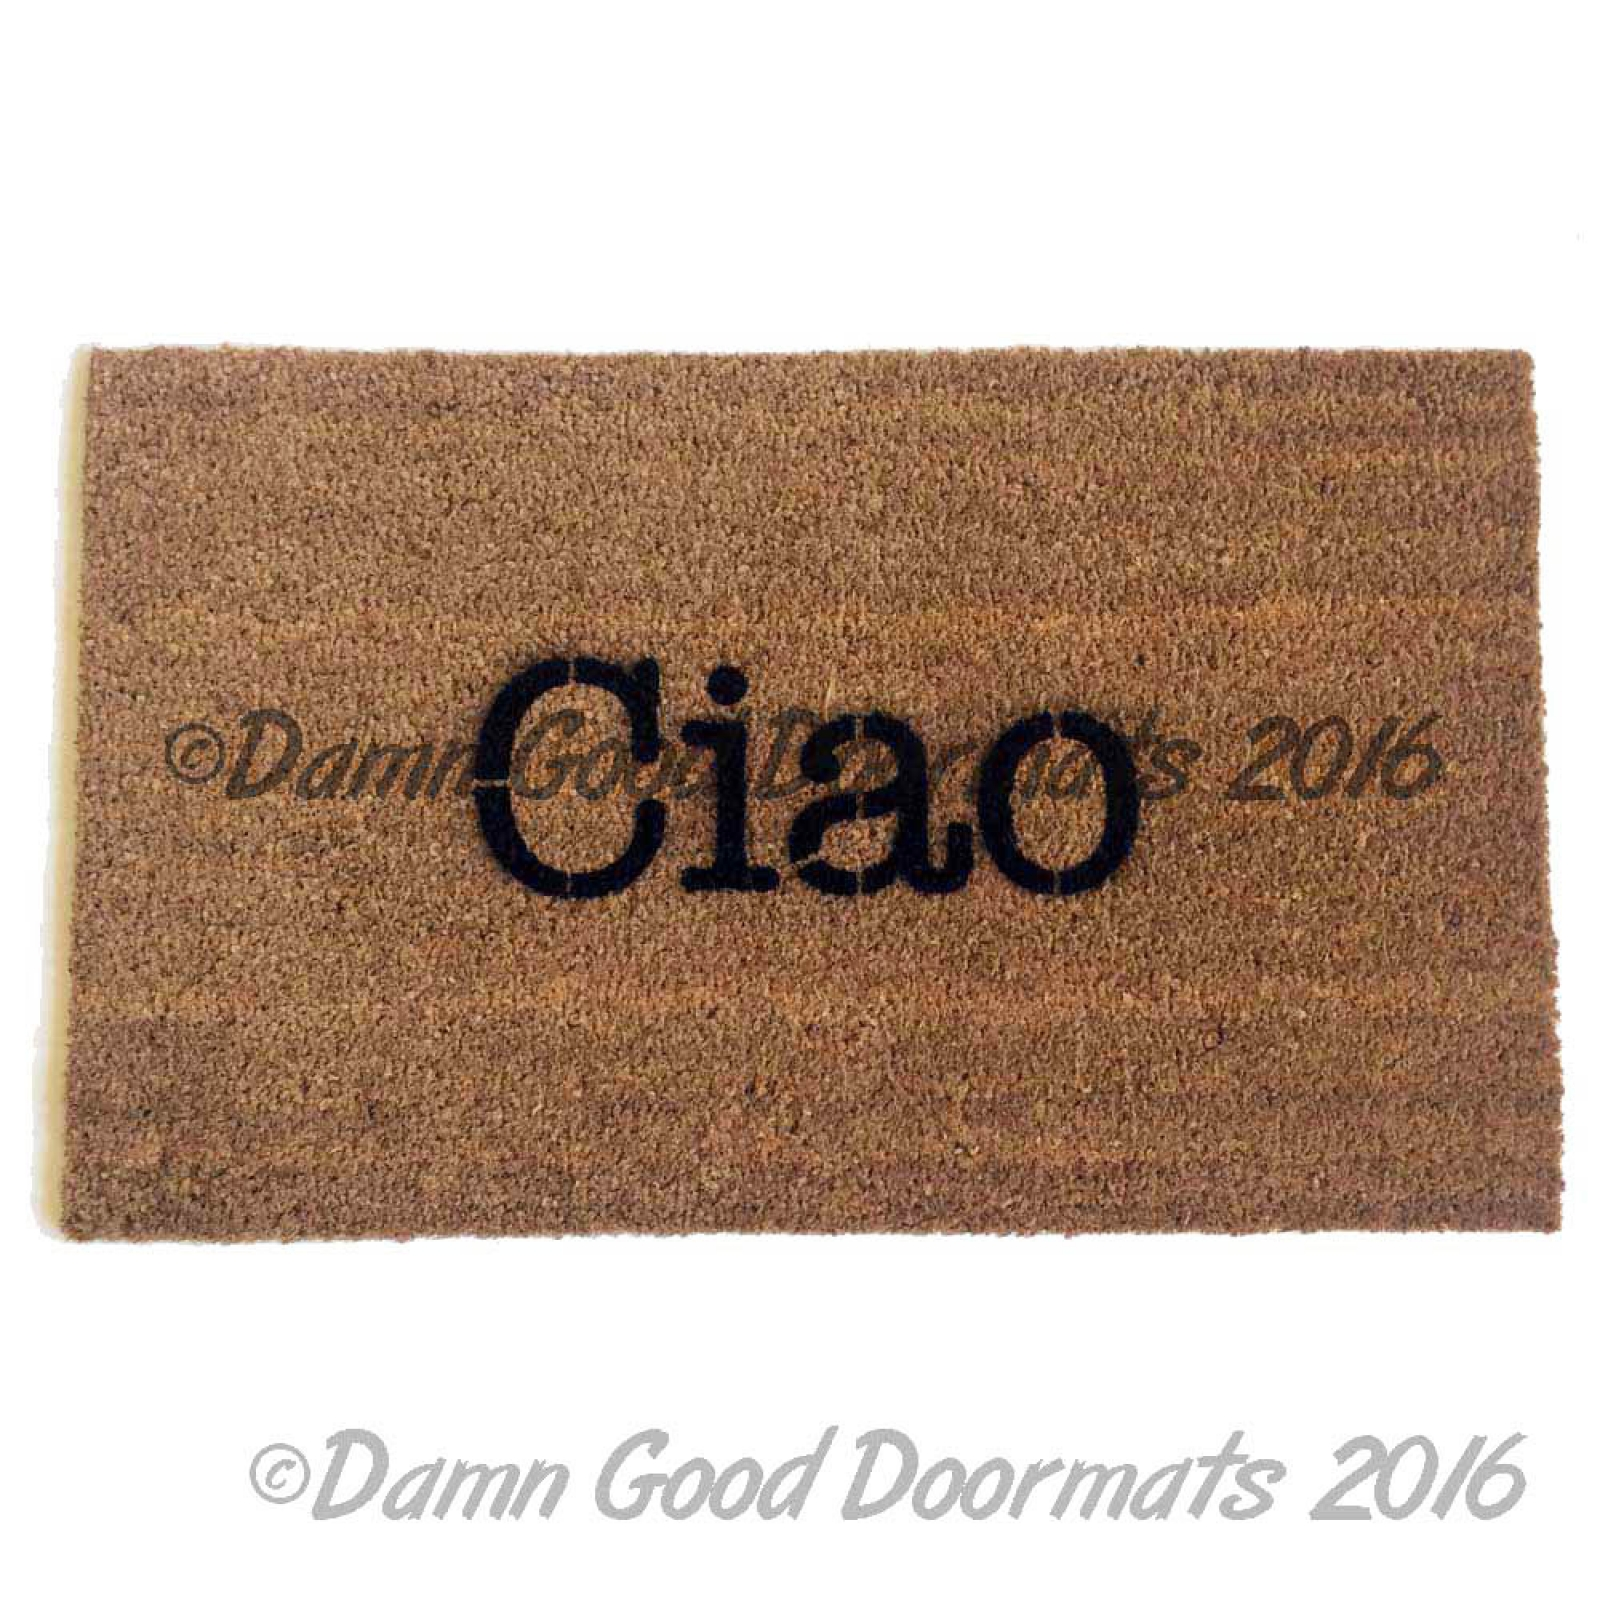 Greatest Italians rejoice! Ciao doormat | Damn Good Doormats QR29